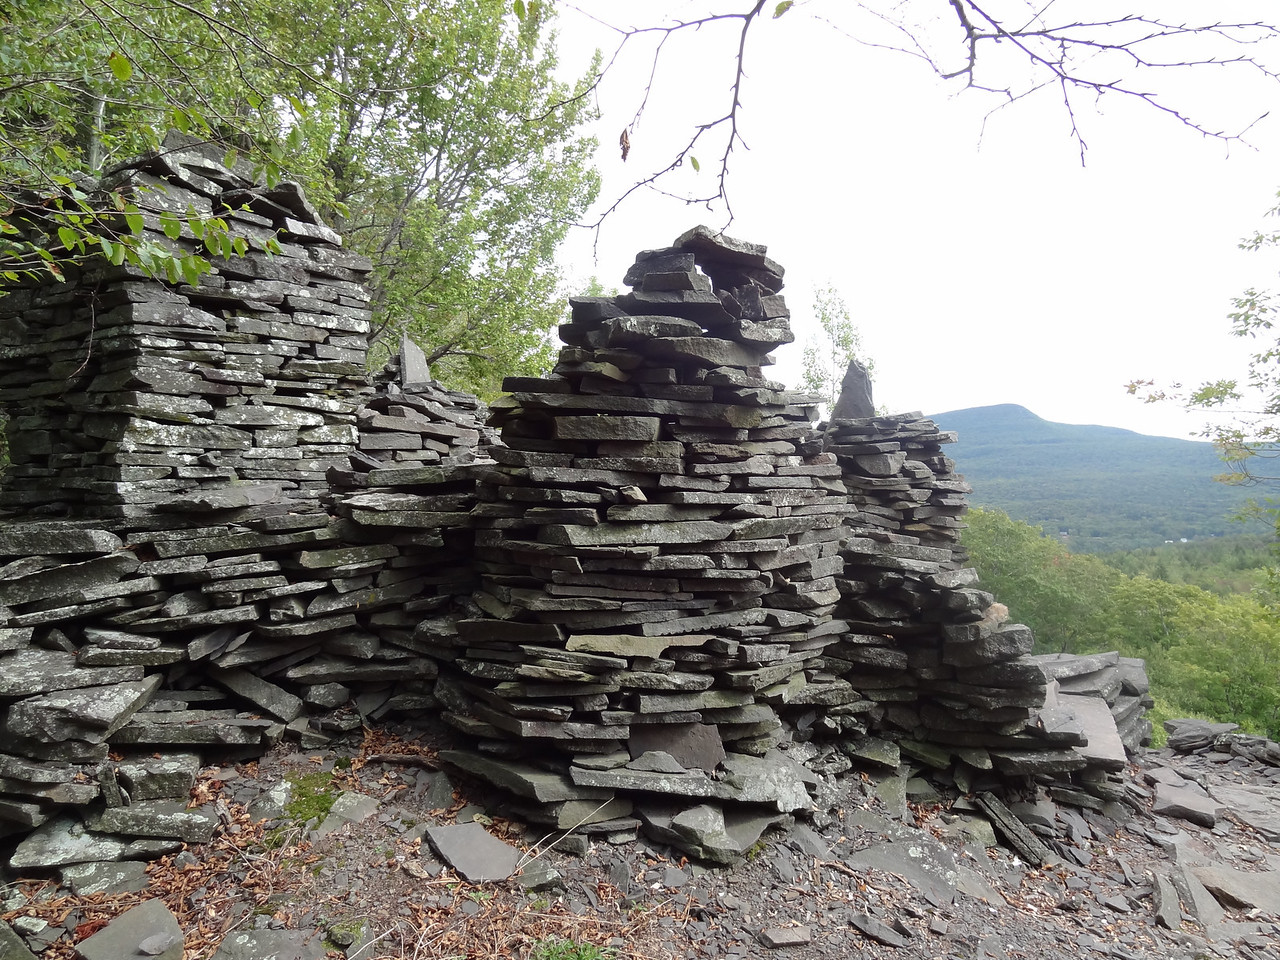 It must have took someone a long time to move all these rocks around. This is only a fraction of them.